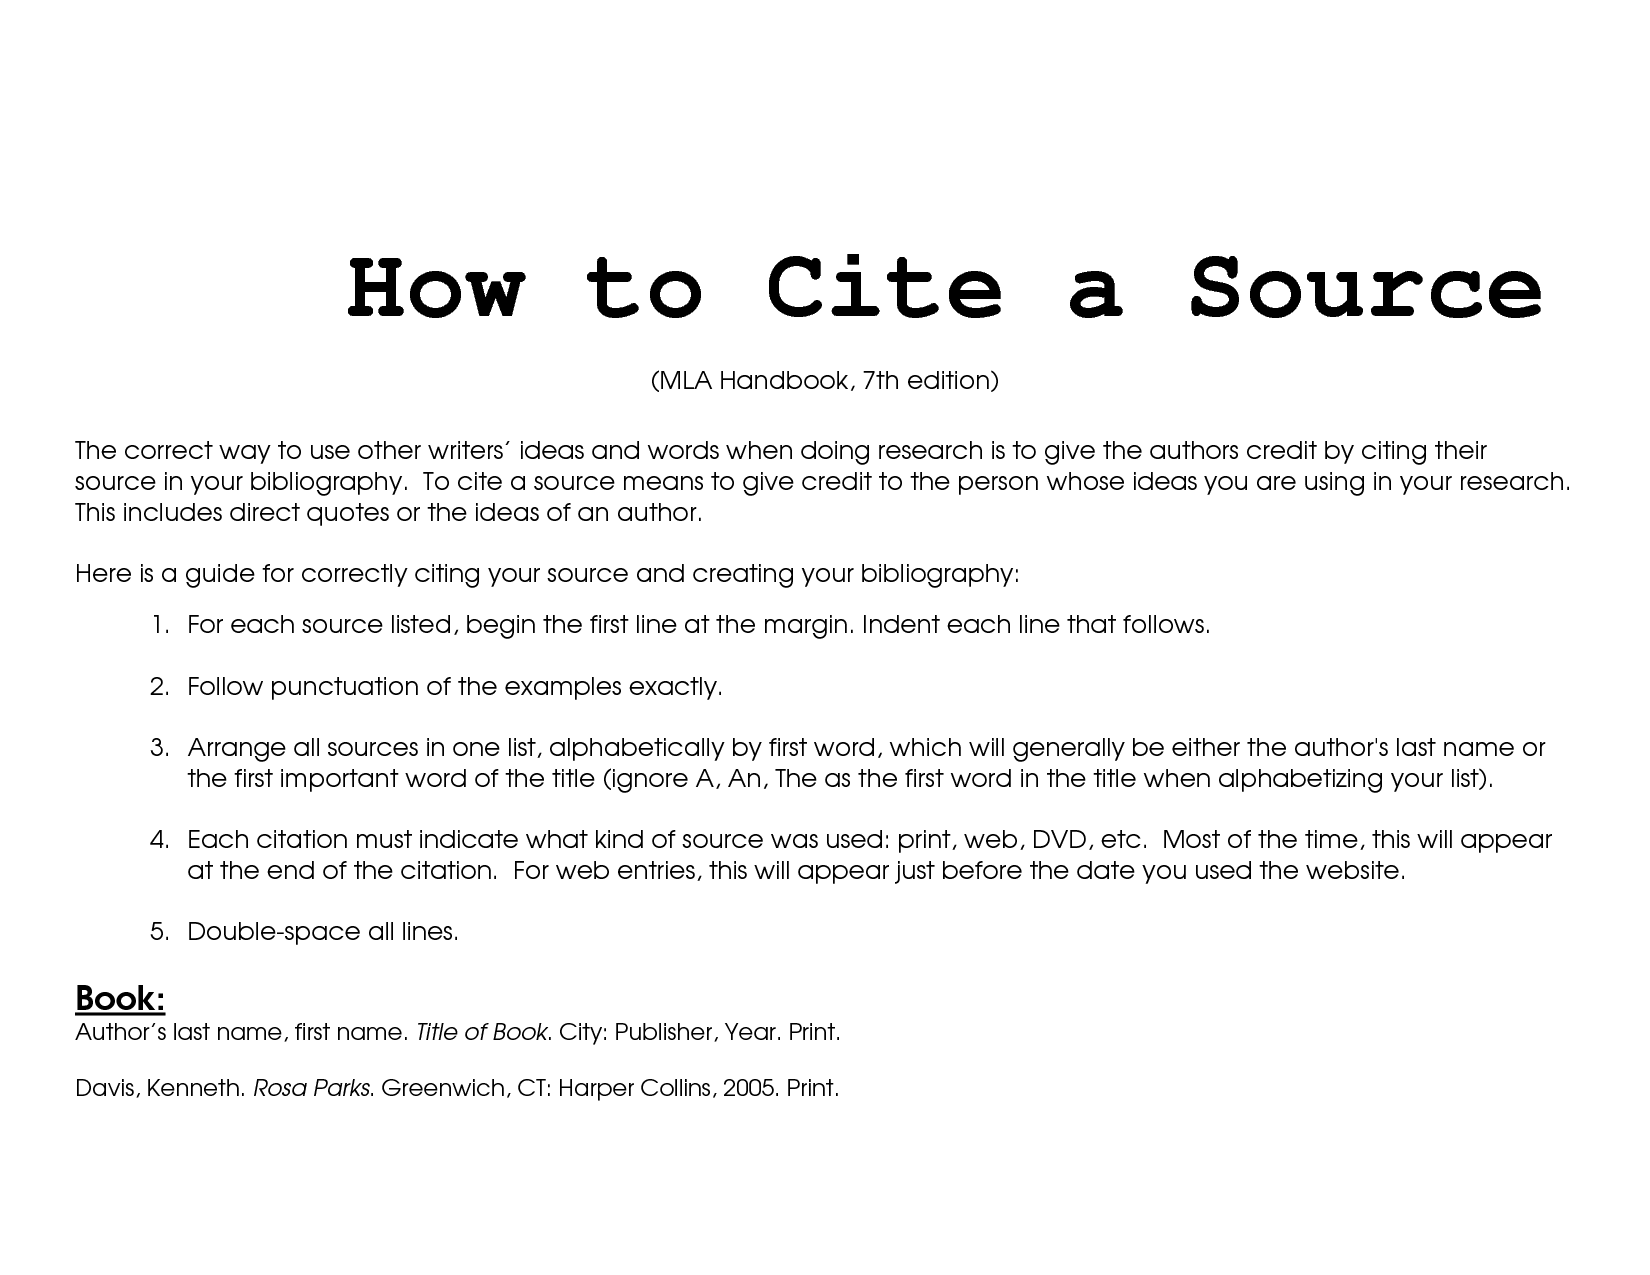 Citing sources in mla style enc1102libraryinstruction cite your sources mla retrieved from httpdocstocdocs132890878cite your sources mla ccuart Image collections